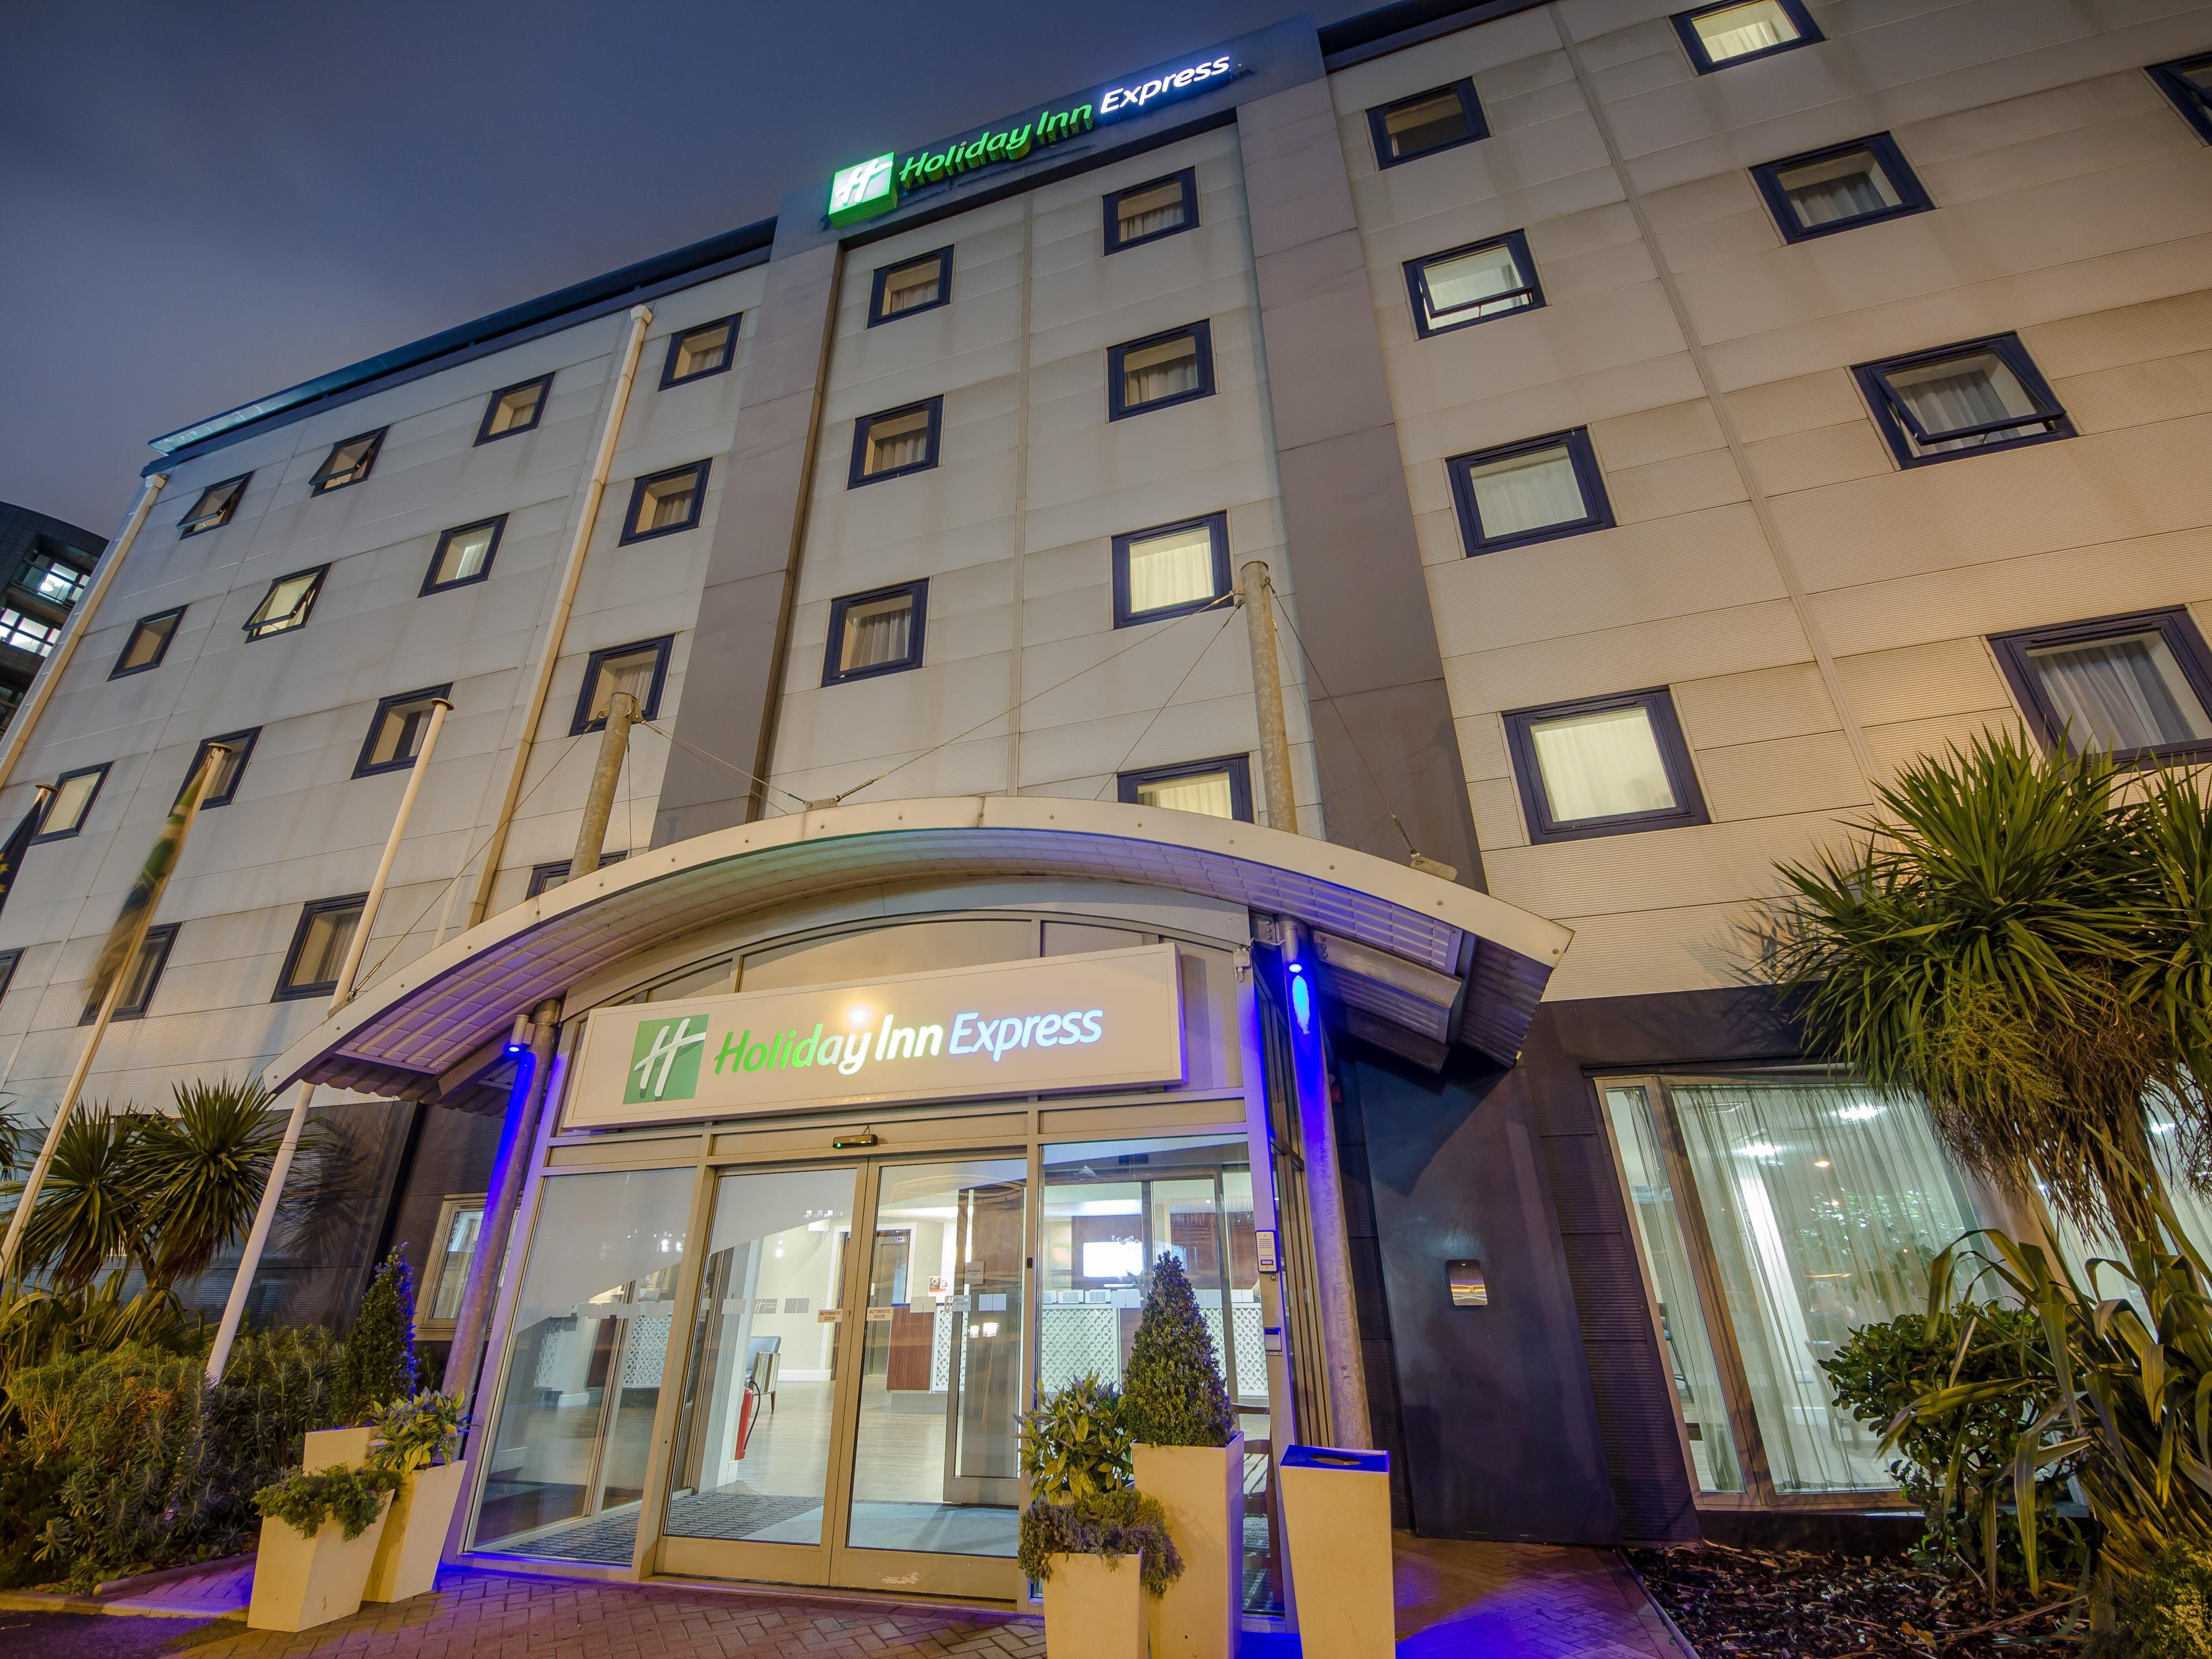 Holiday inn express london royal docks docklands hotel by ihg for Hotels 02 london